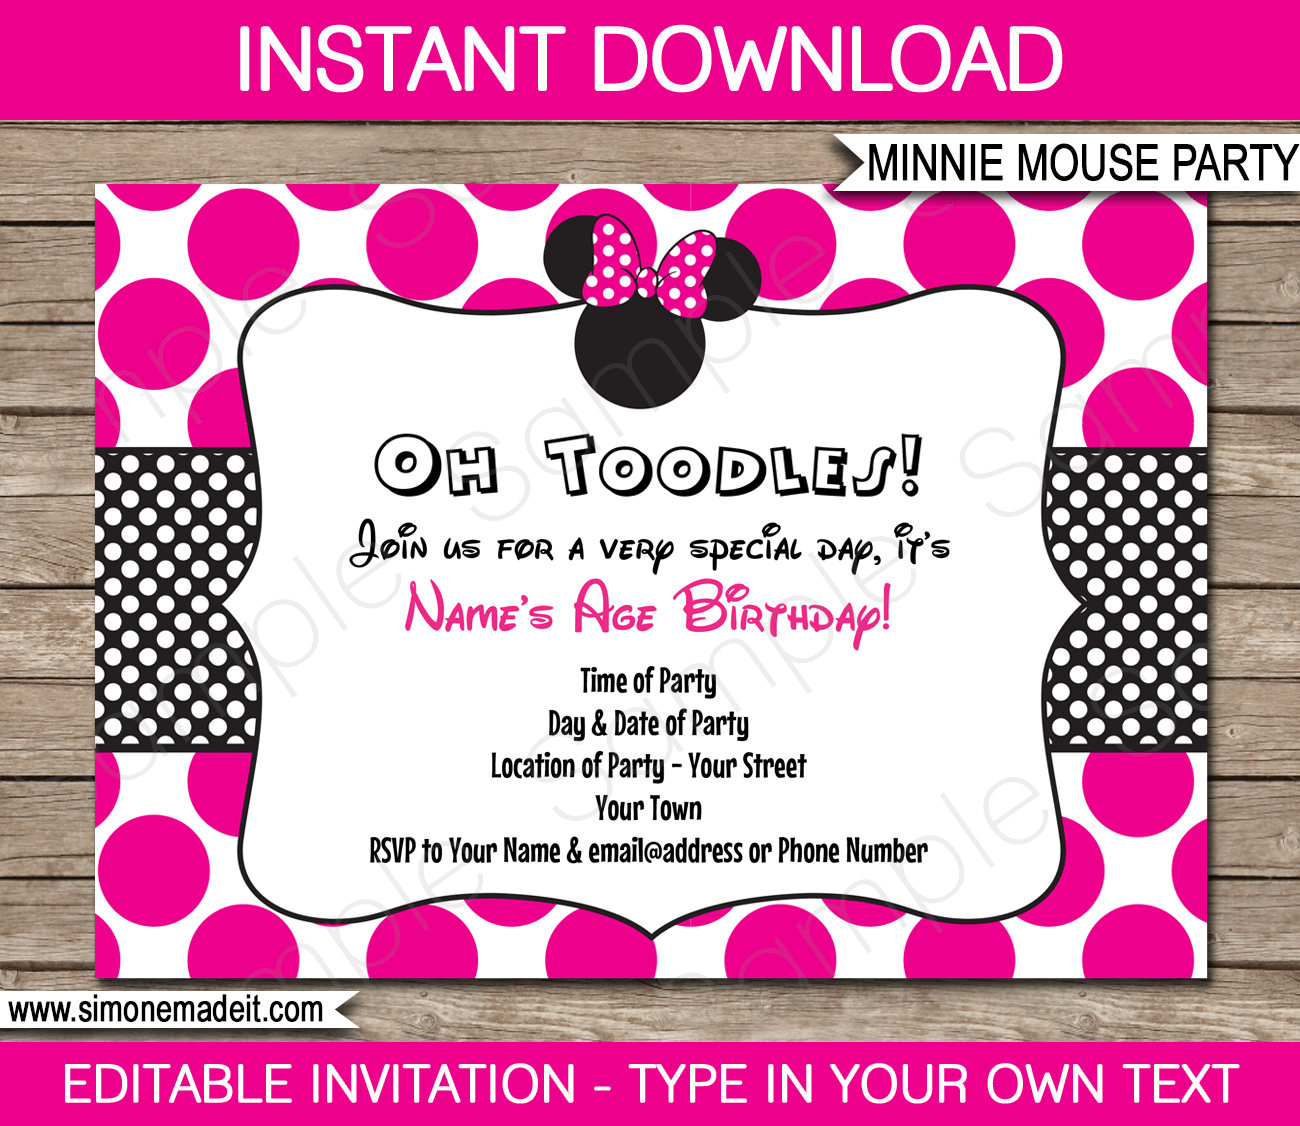 Minnie Mouse Party Invitations Template | Birthday Party - Free Printable Minnie Mouse Party Invitations